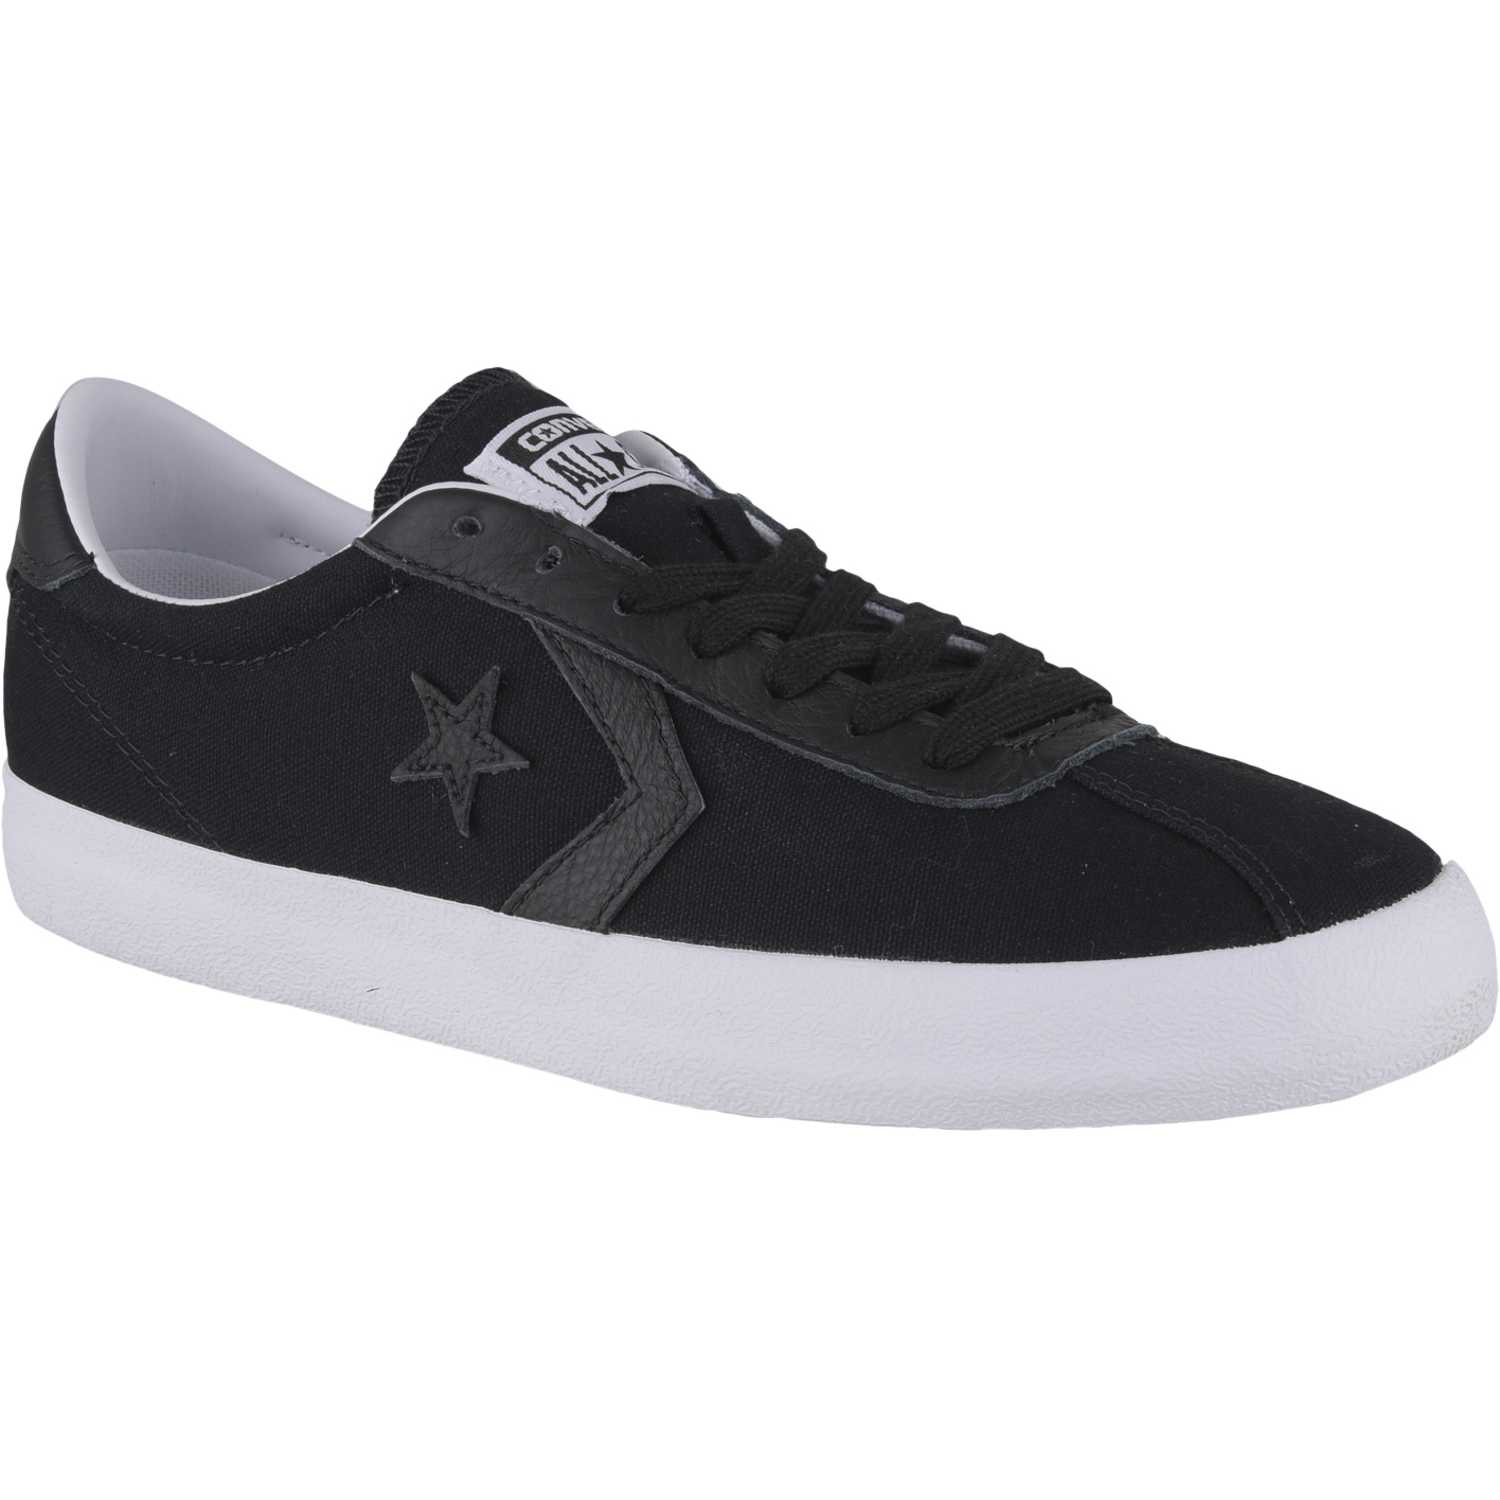 3d1a08151f1 Zapatilla de Hombre Converse Negro   blanco star player canvas ...